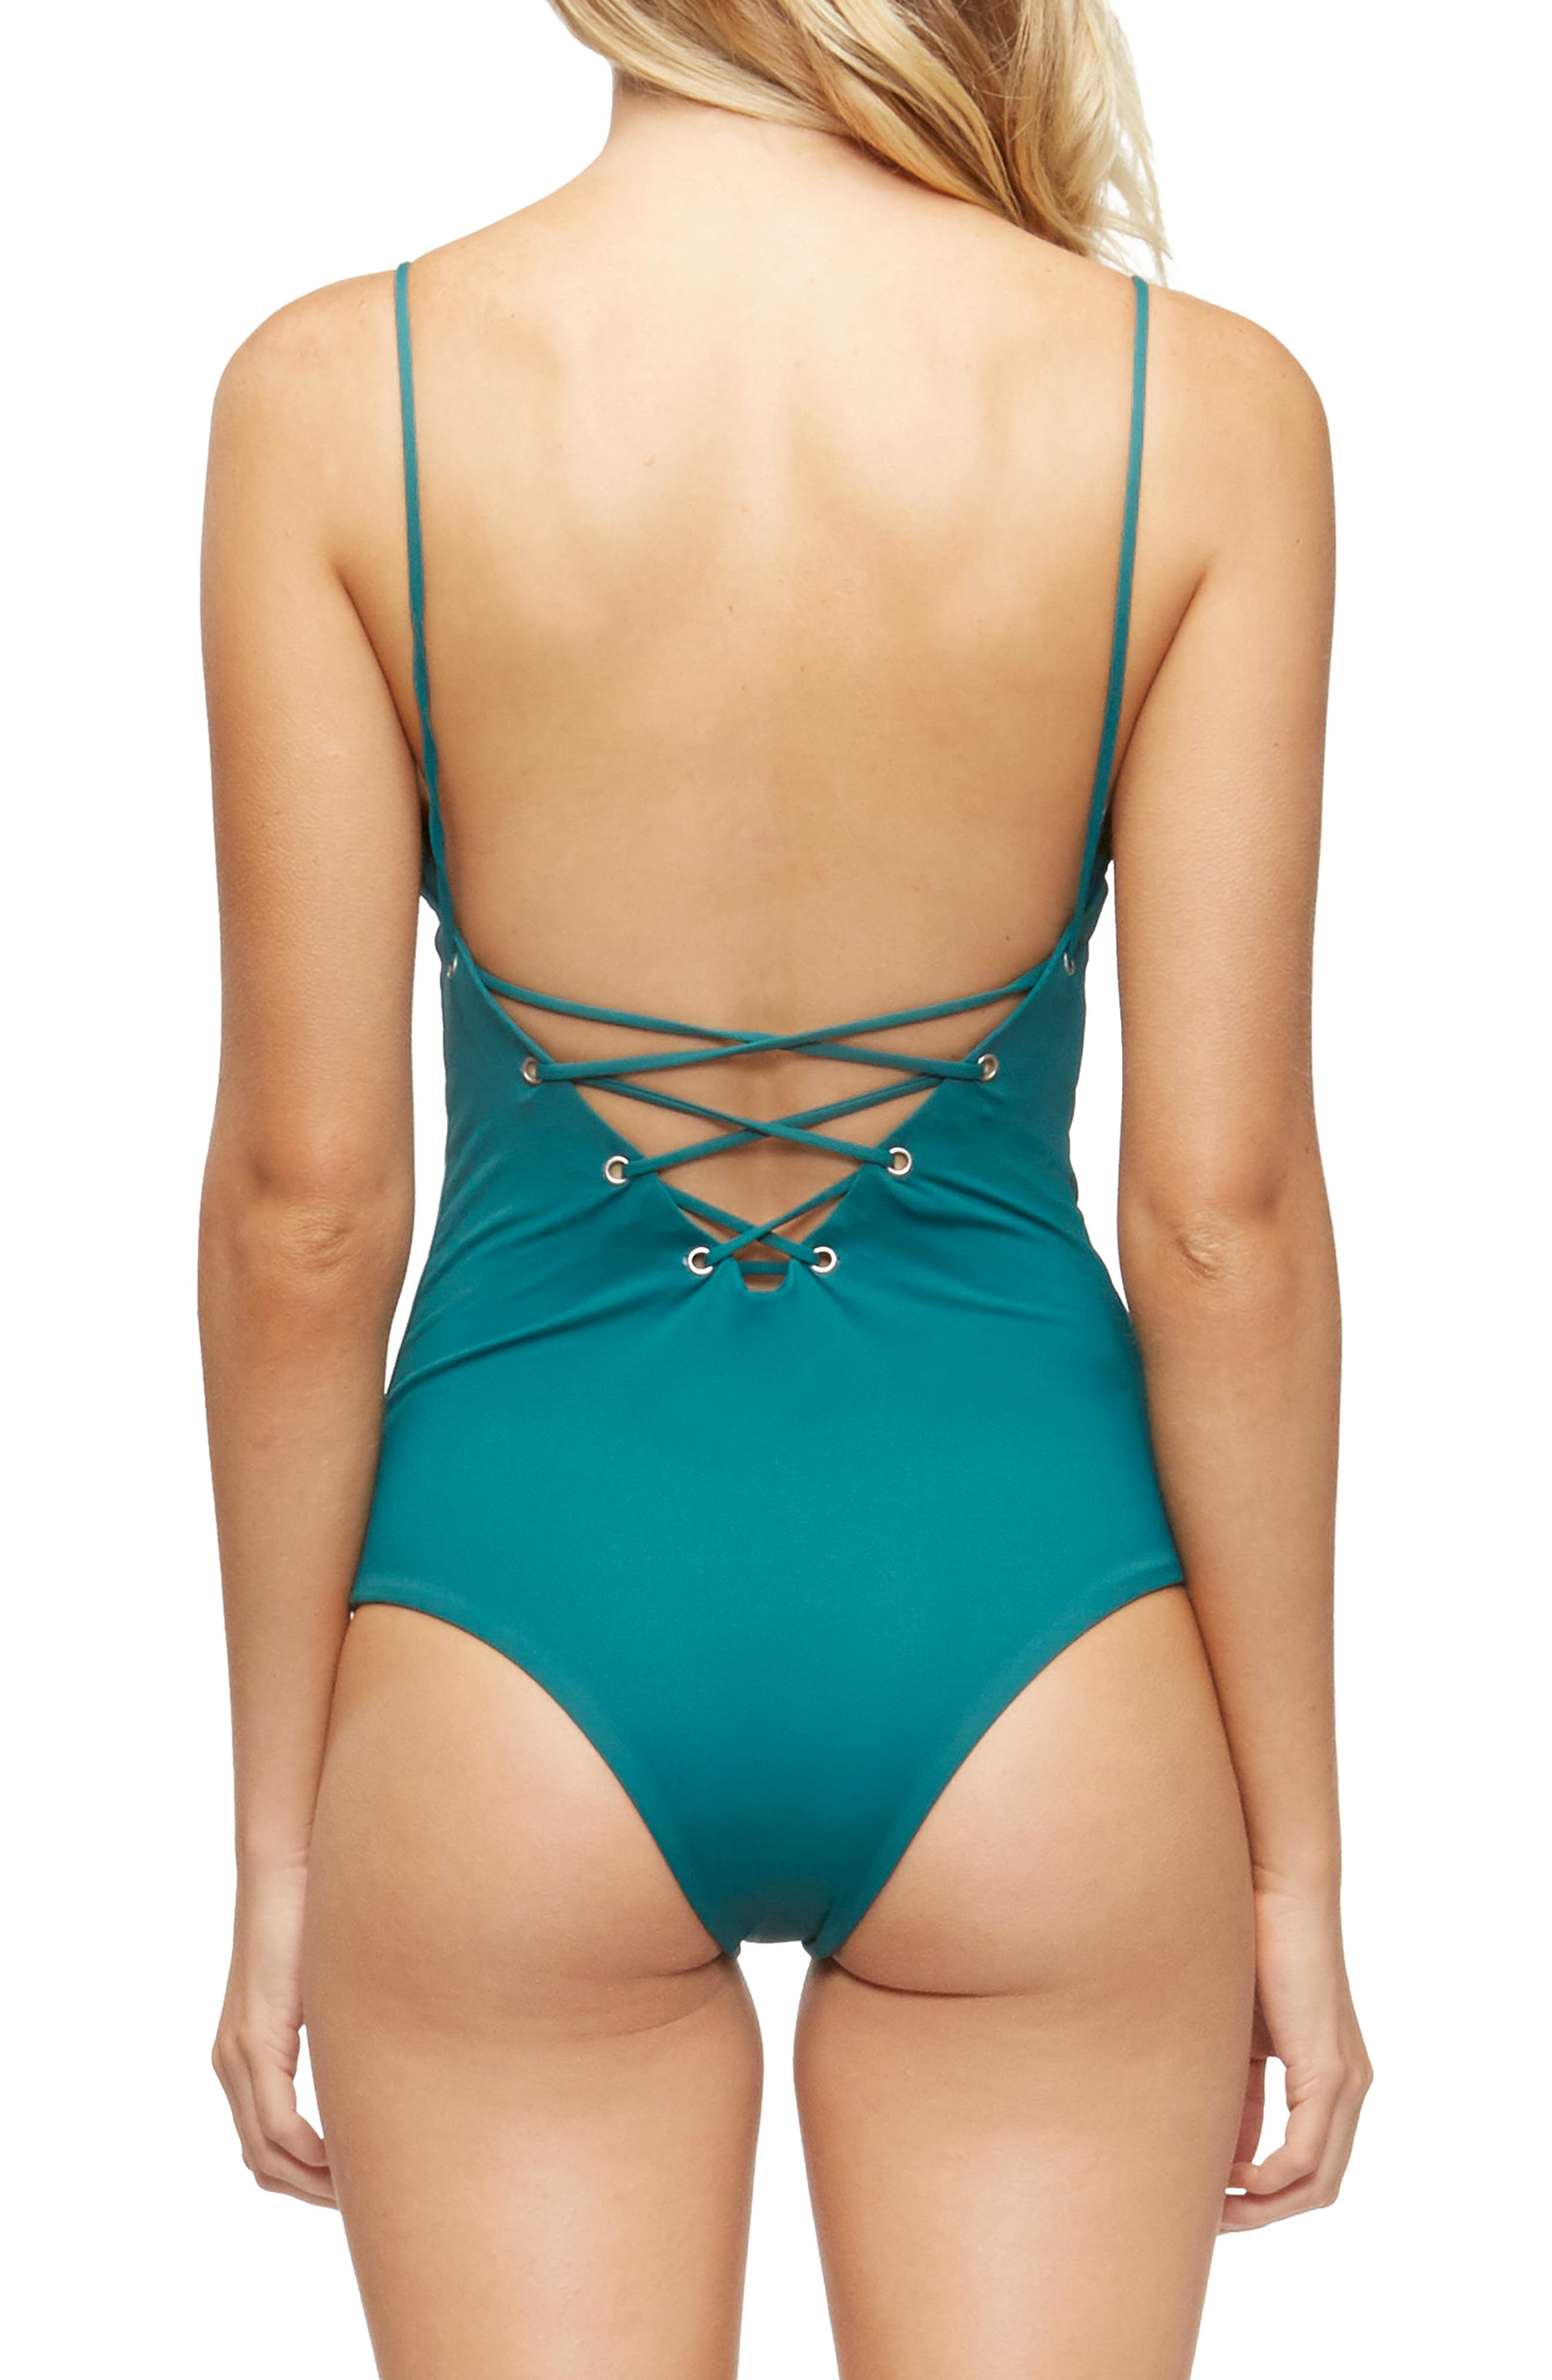 Monahan One-Piece Swimsuit,                             Alternate thumbnail 2, color,                             313